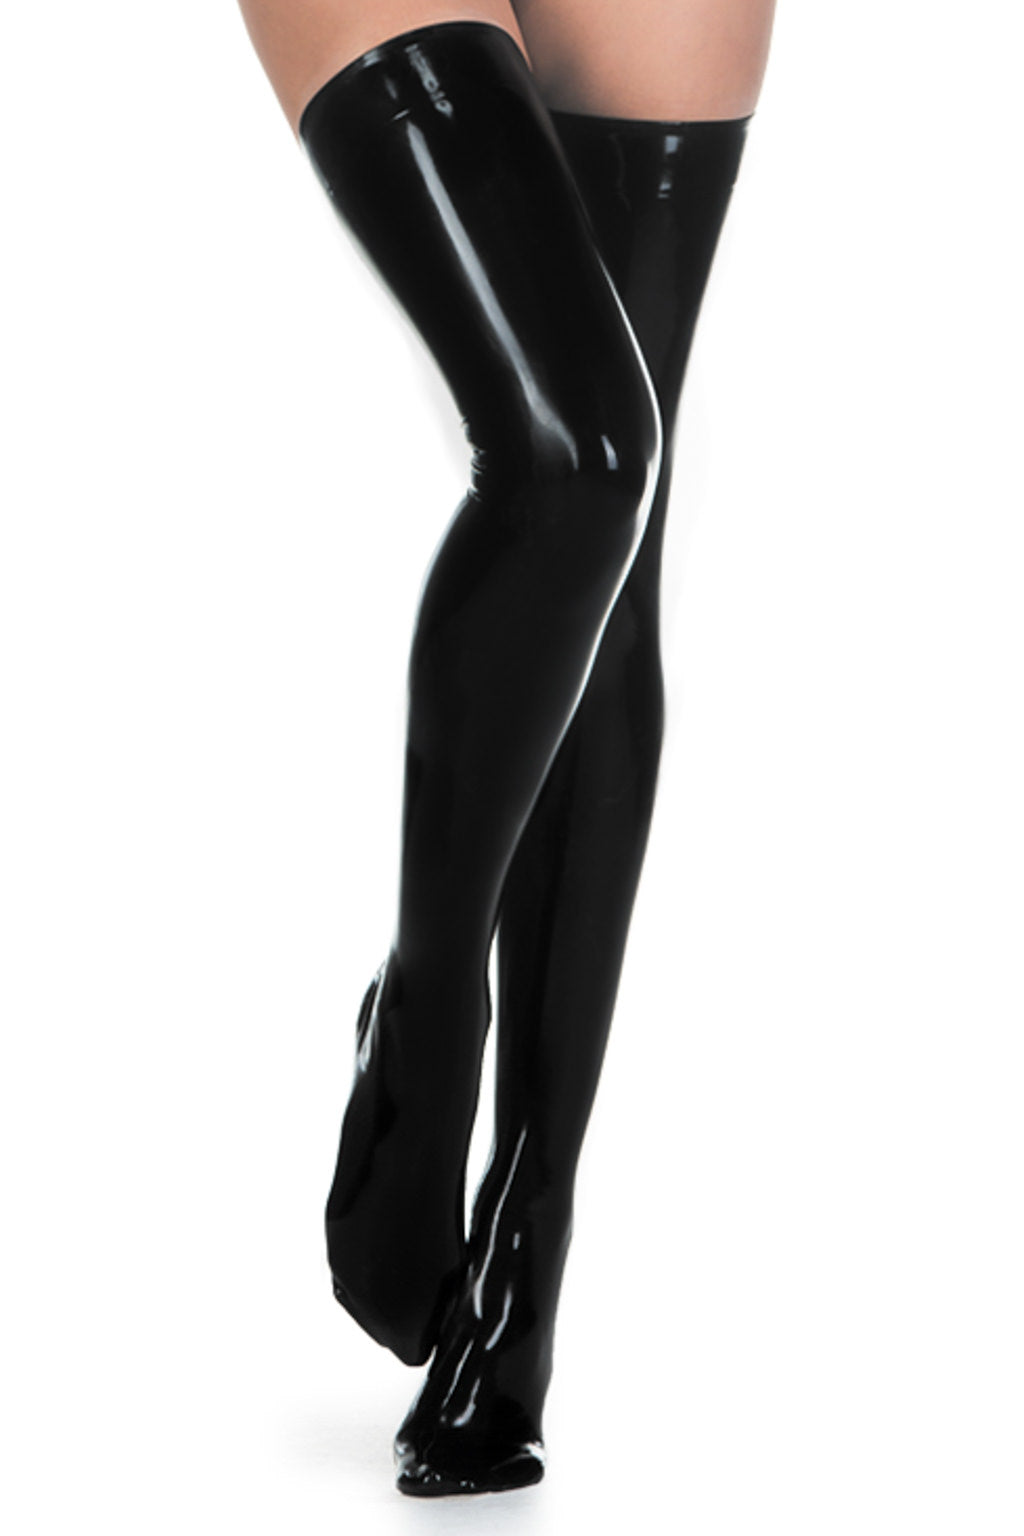 A woman wearing a pair of hand tailored smokey grey latex stockings.